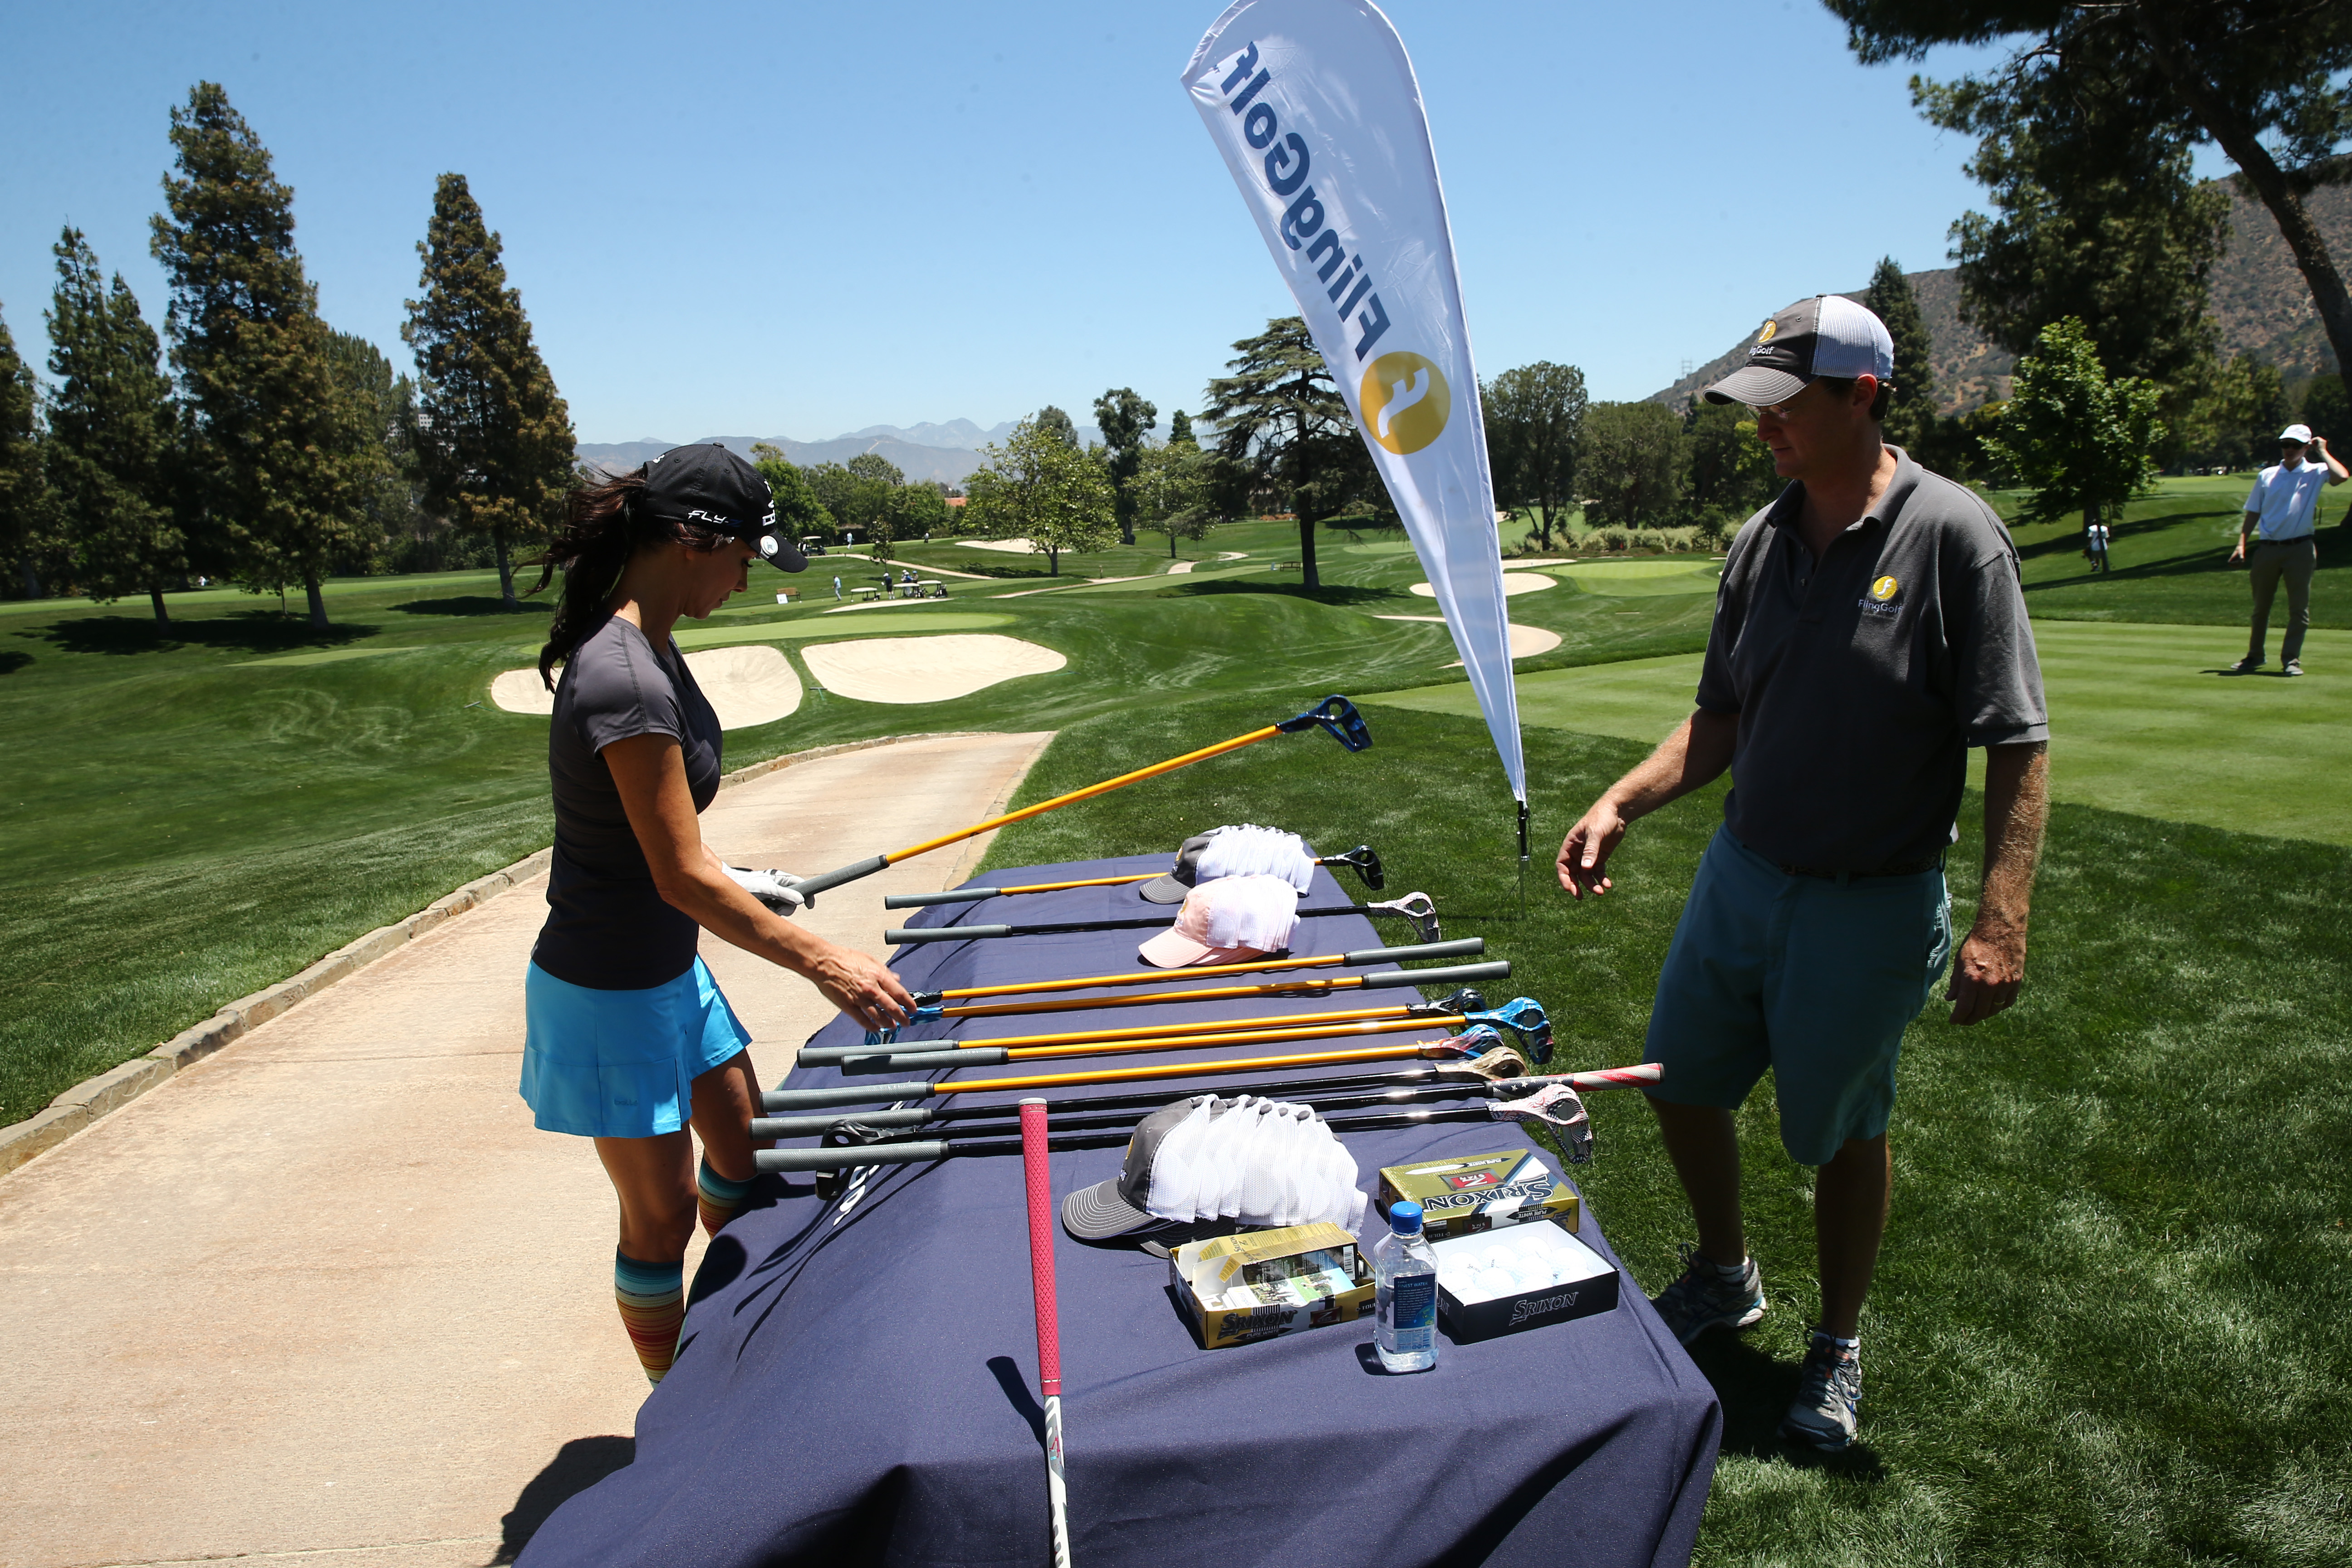 Debbe Dunning checks out 'Fling Golf' at The Screen Actors Guild Foundation's 6th Annual Los Angeles Golf Classic on June 8, 2015 in Burbank, California. (Photo by Mark Davis/Getty Images for The Screen Actors Guild Foundation)